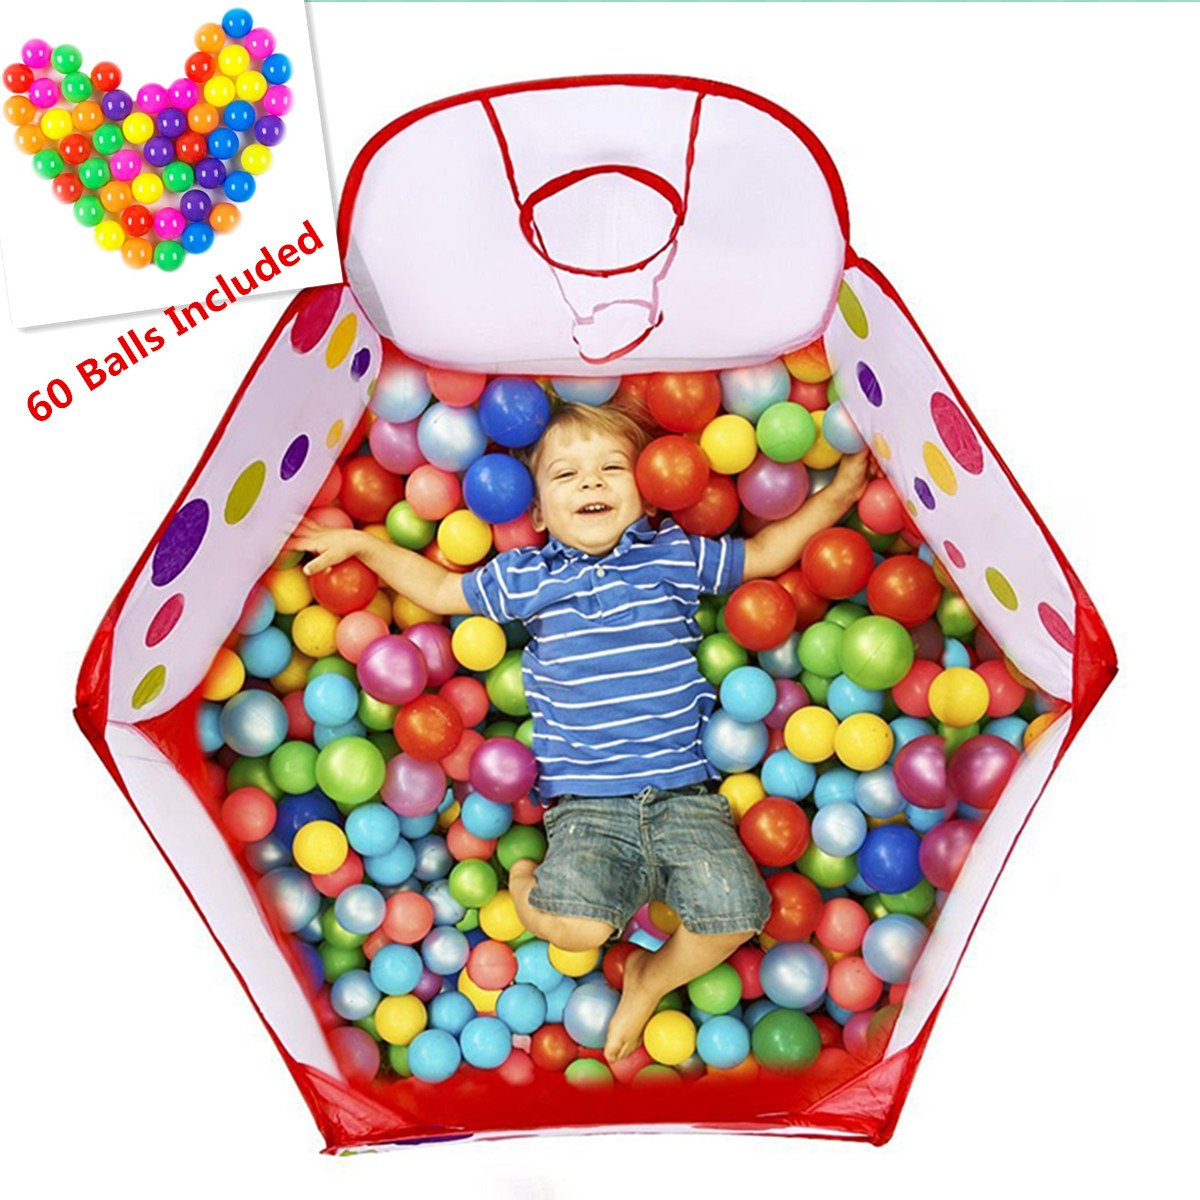 A-cool Foldable Children Toddlers Ball Pit Tent Sea Ball Pool Toy with Basketball Hoop and Zippered Storage Bag by, 4 Ft/120cm (✿✿ 60 Balls Included ✿✿) 4 Ft/120cm (✿✿ 60 Balls Included ✿✿)